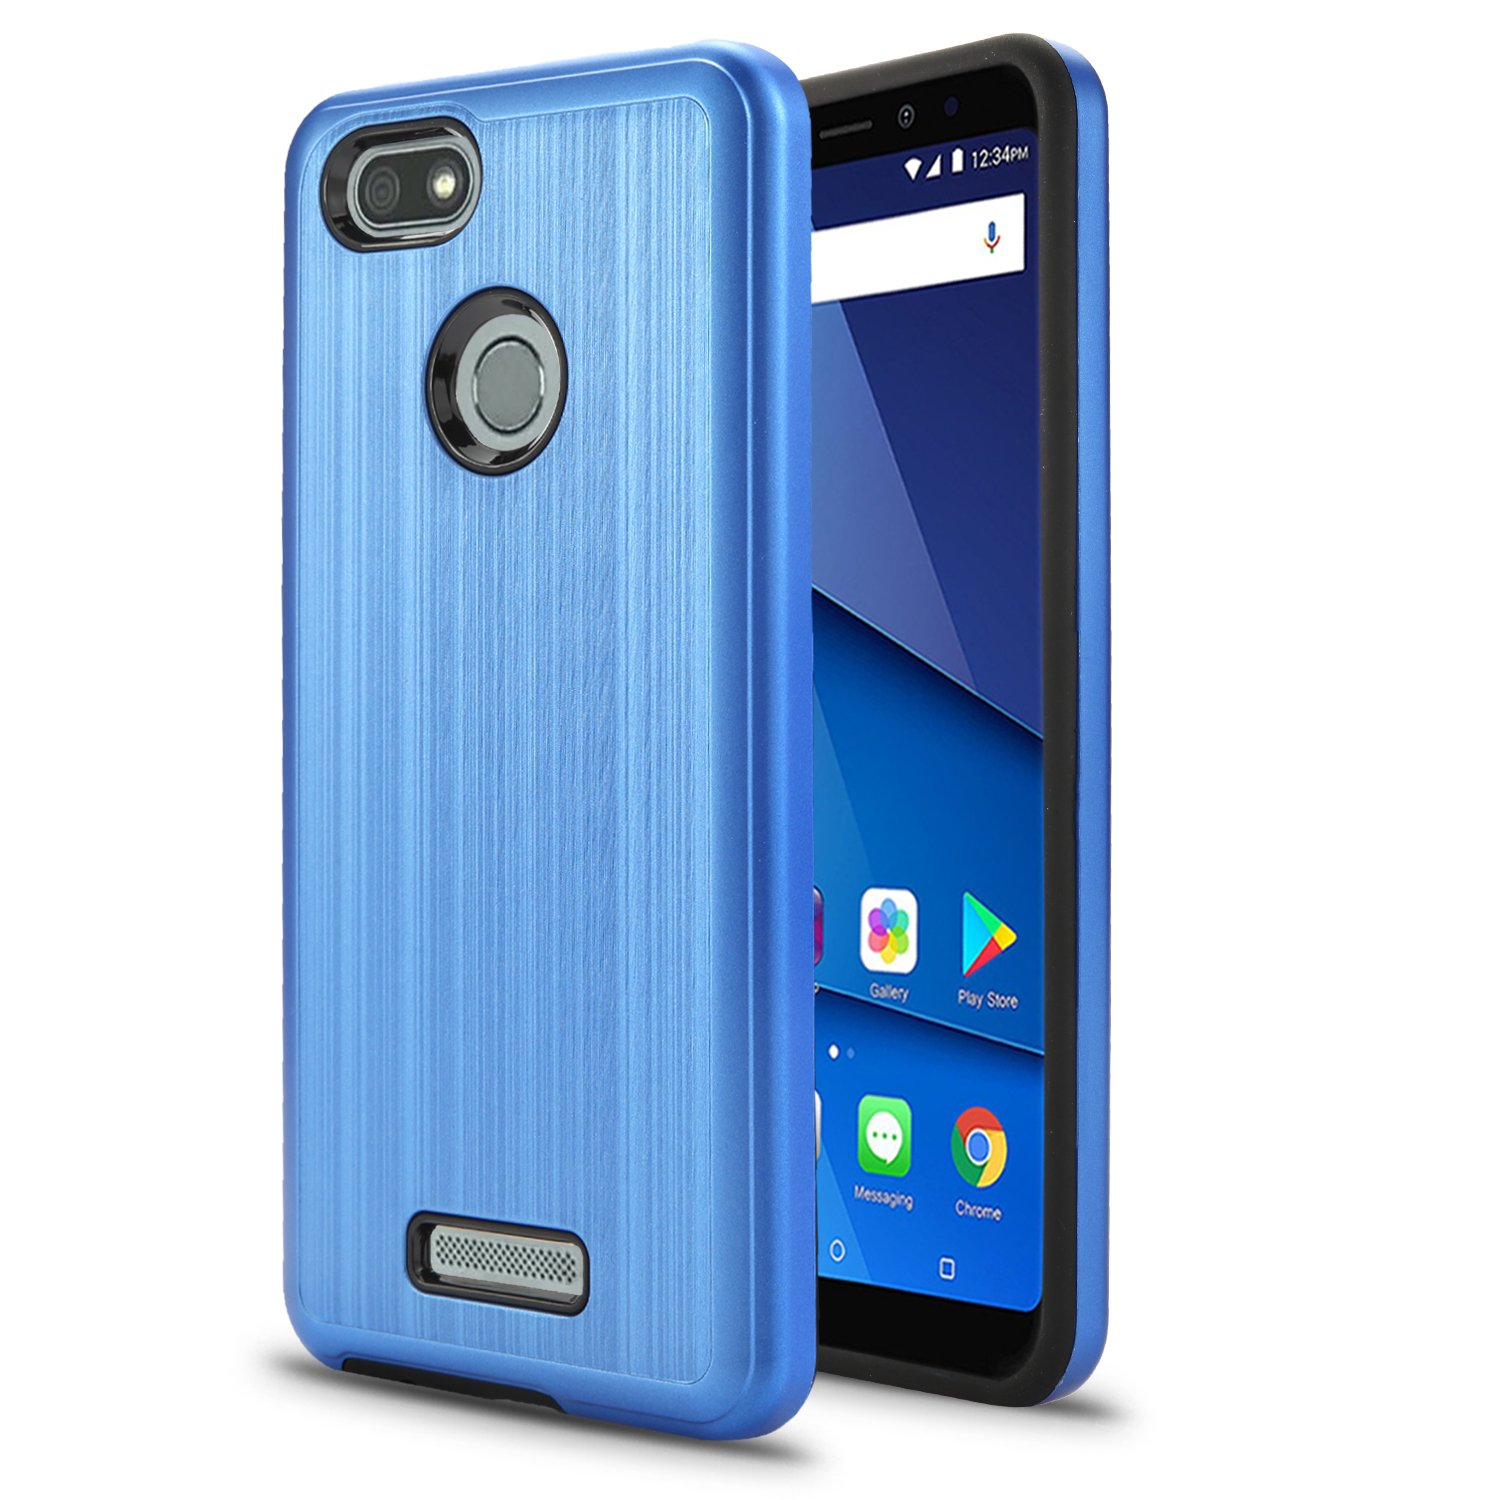 BLU Vivo XL3 case, (V0250WW) 5.5 inch case, [ New Frontier Wireless], Tough Hybrid + Dual Layer Shockproof Drop Protection Metallic Brushed Case Cover for BLU Vivo XL3 case (VGC Blue)